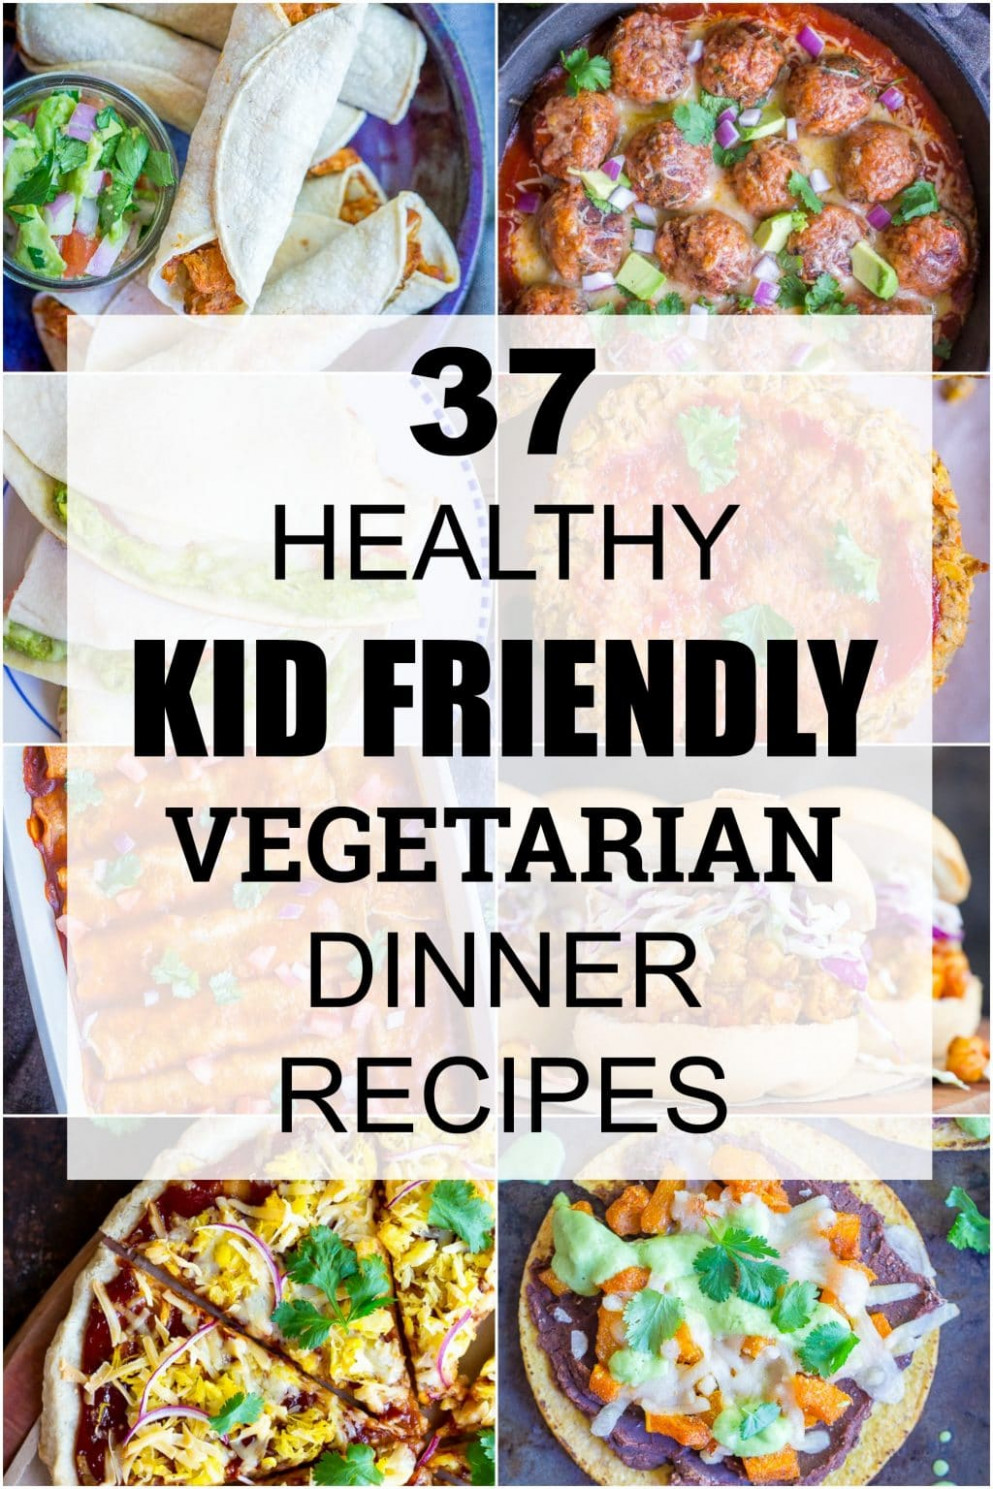 12 Healthy Kid Friendly Vegetarian Dinner Recipes - She ..